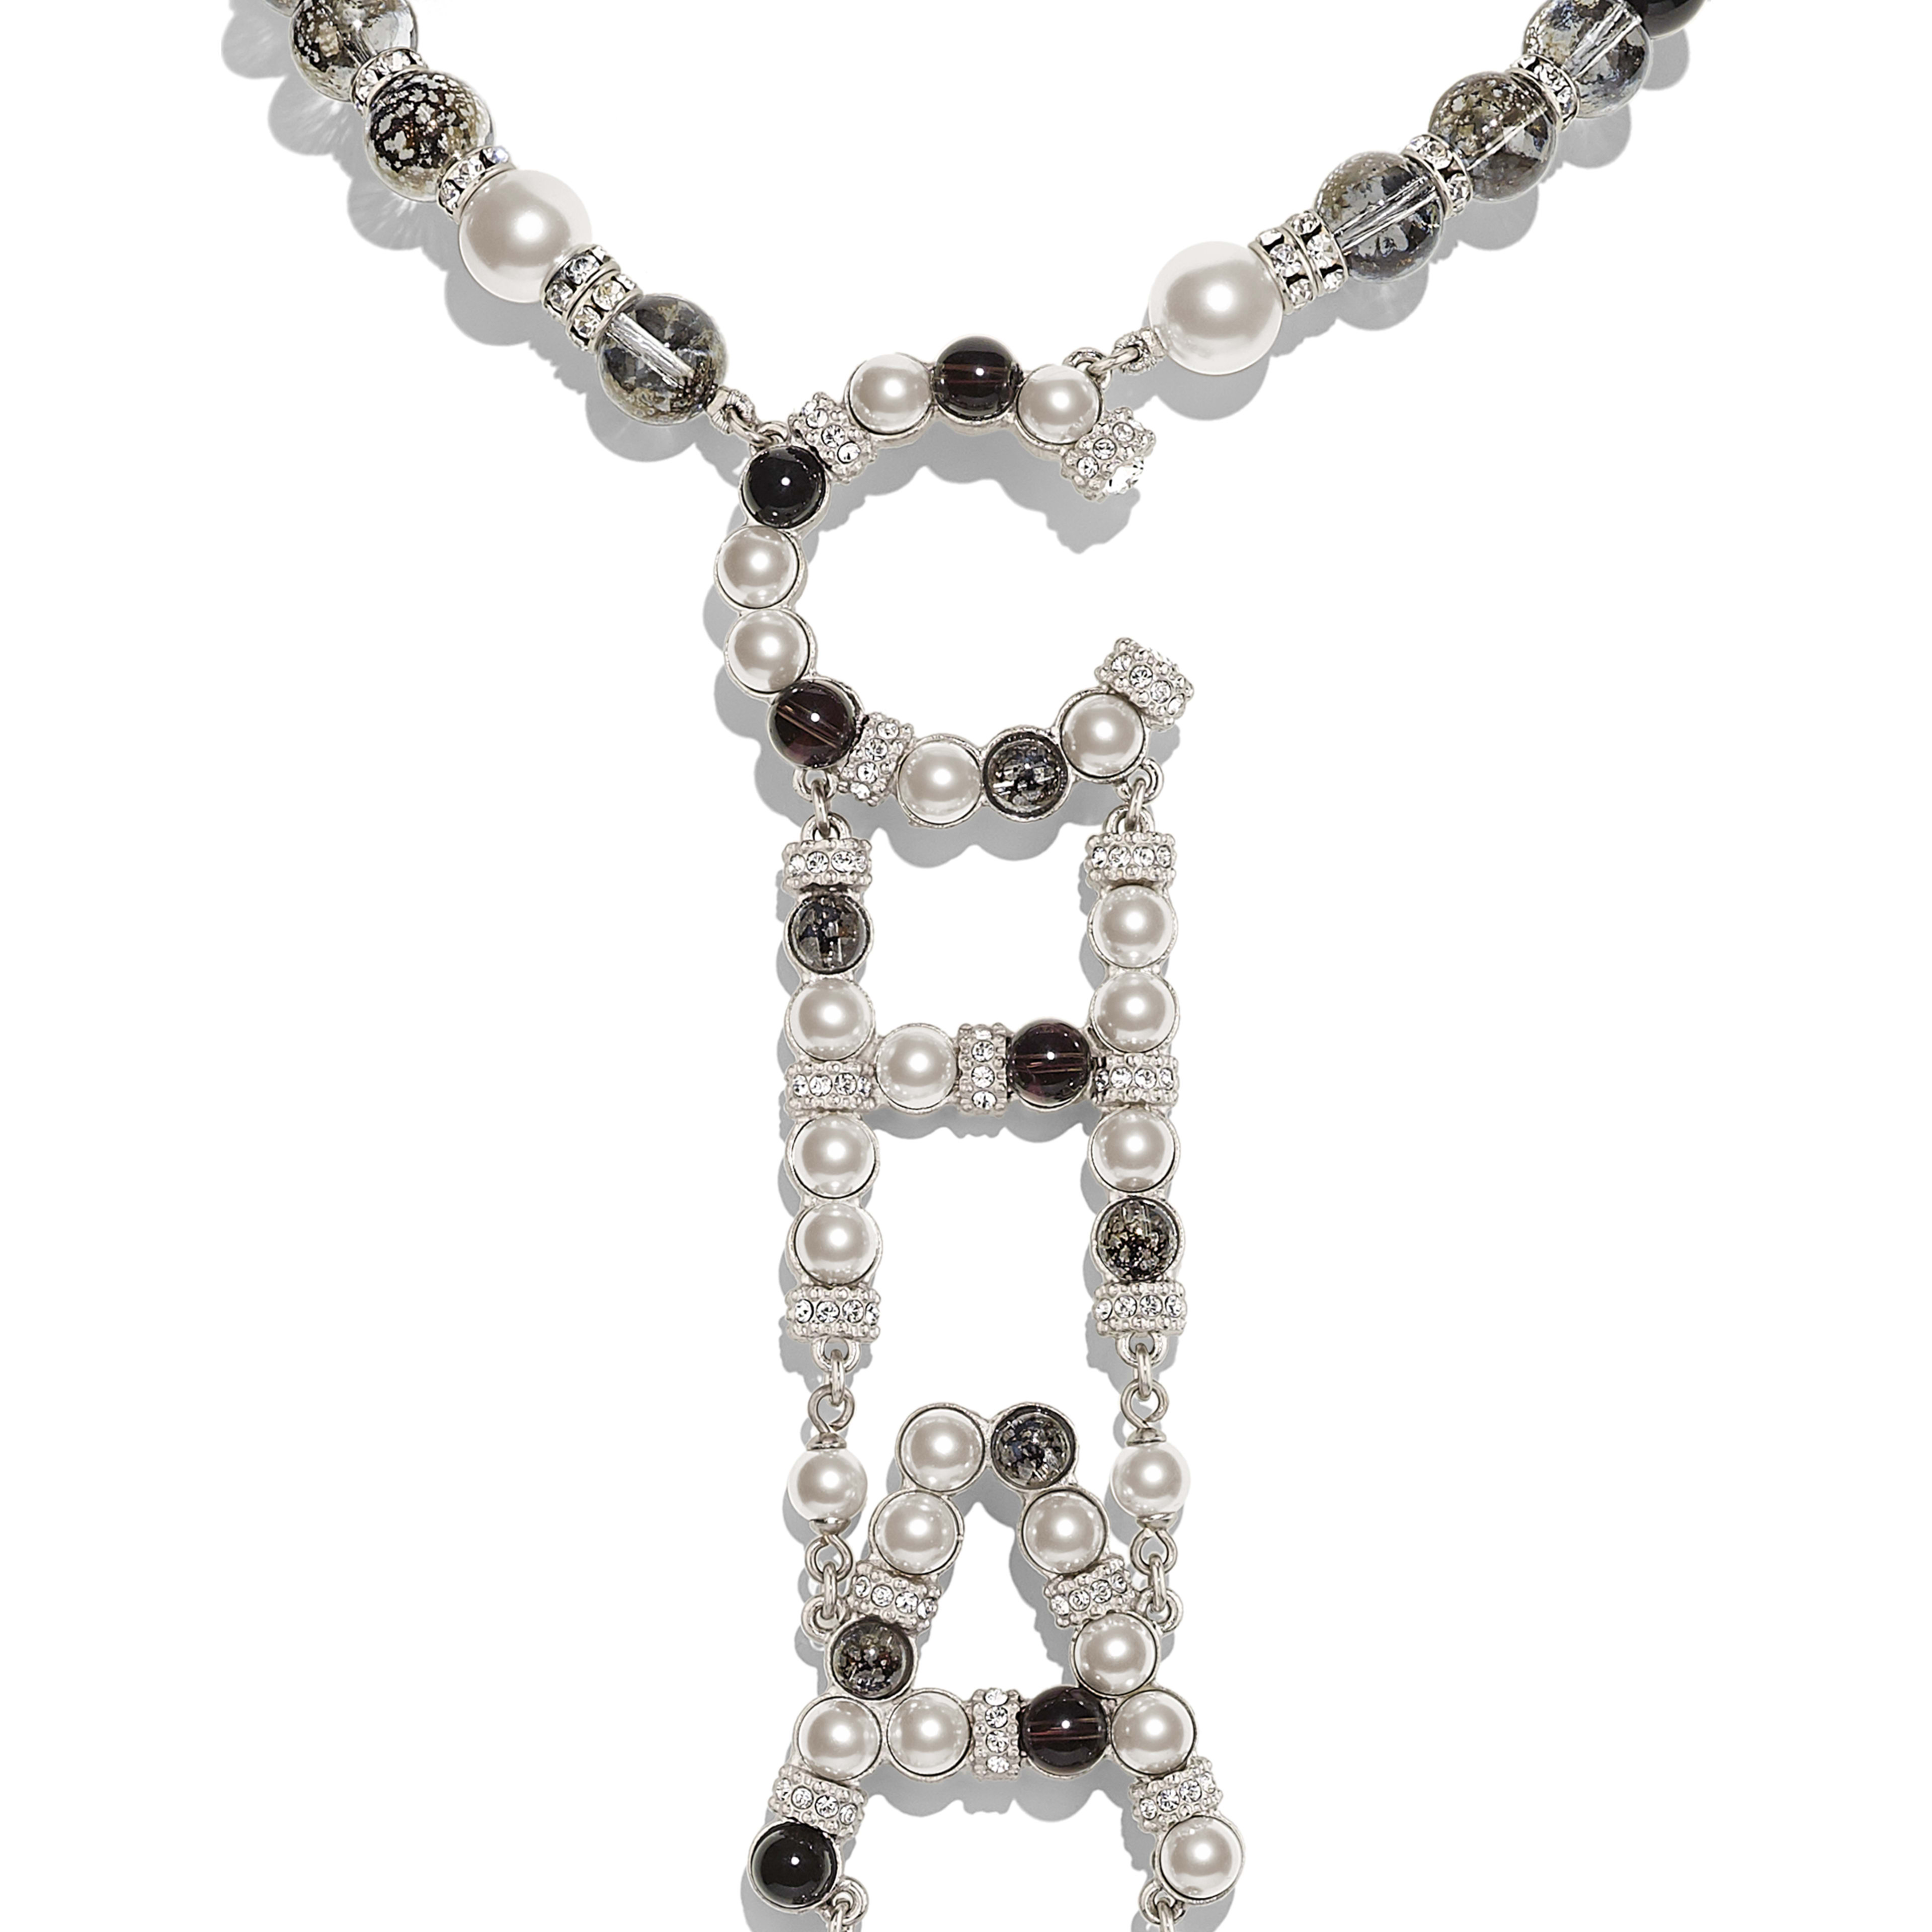 Necklace - Silver, Pearly White, Black & Crystal - Metal, Natural Stones, Glass Pearls & Strass - Other view - see full sized version